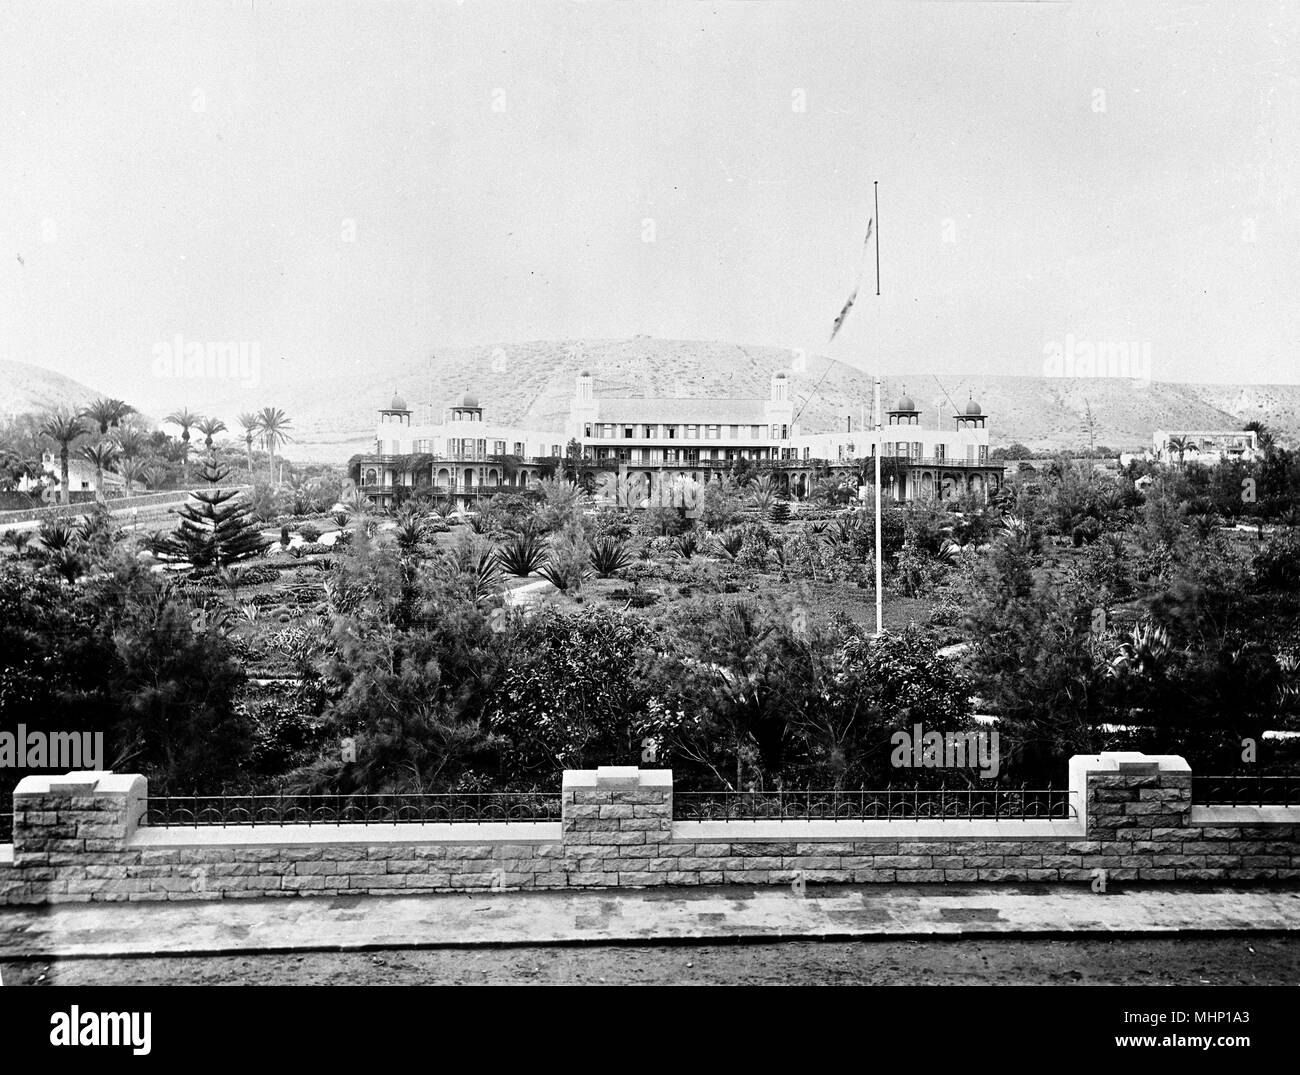 Santa Catalina Hotel, Las Palmas, Gran Canaria, Canary Islands, with the gardens in the foreground.     Date: circa 1890 - Stock Image